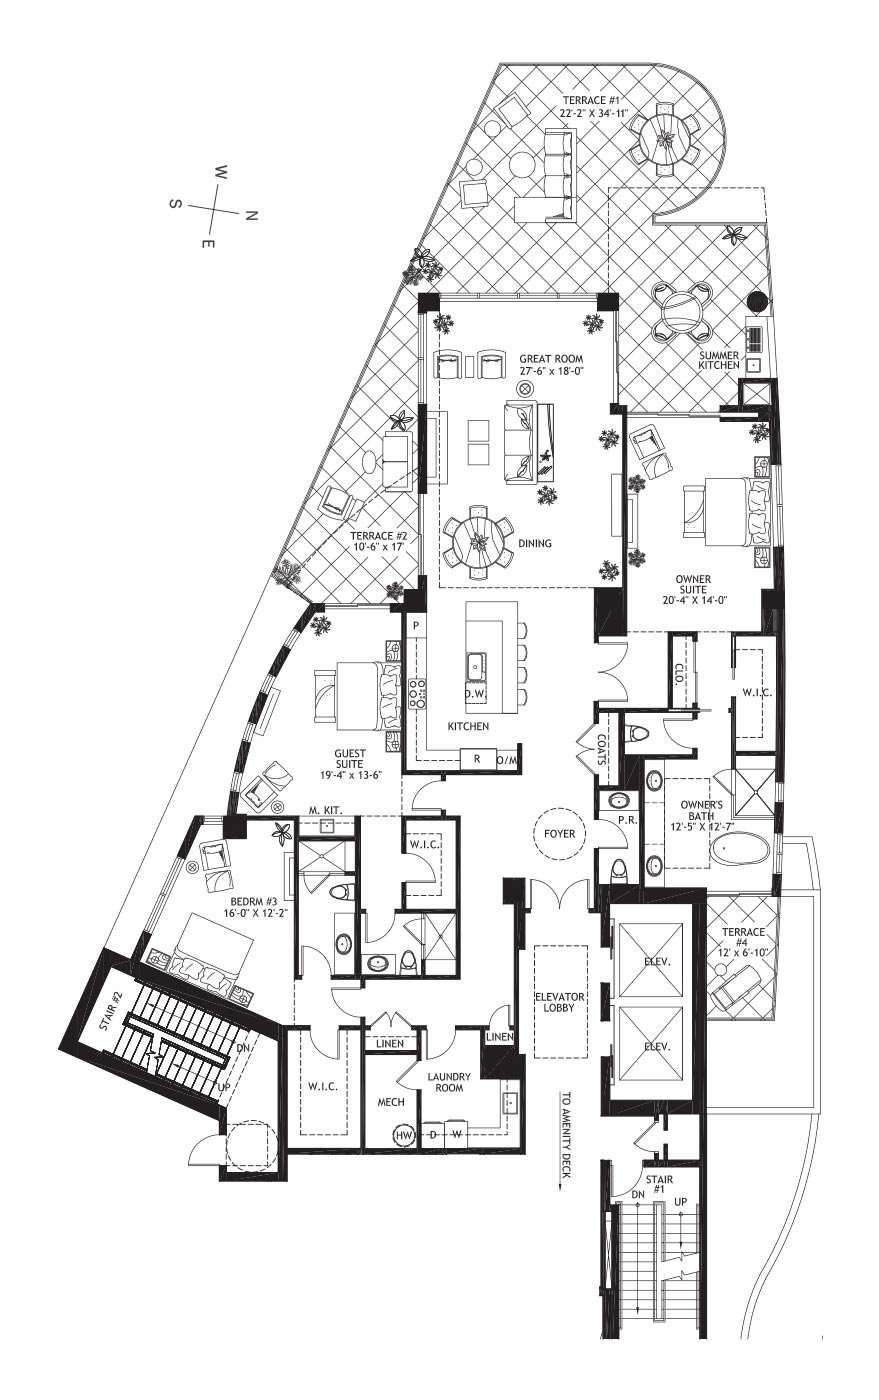 Residence Level 3 - Floor plan